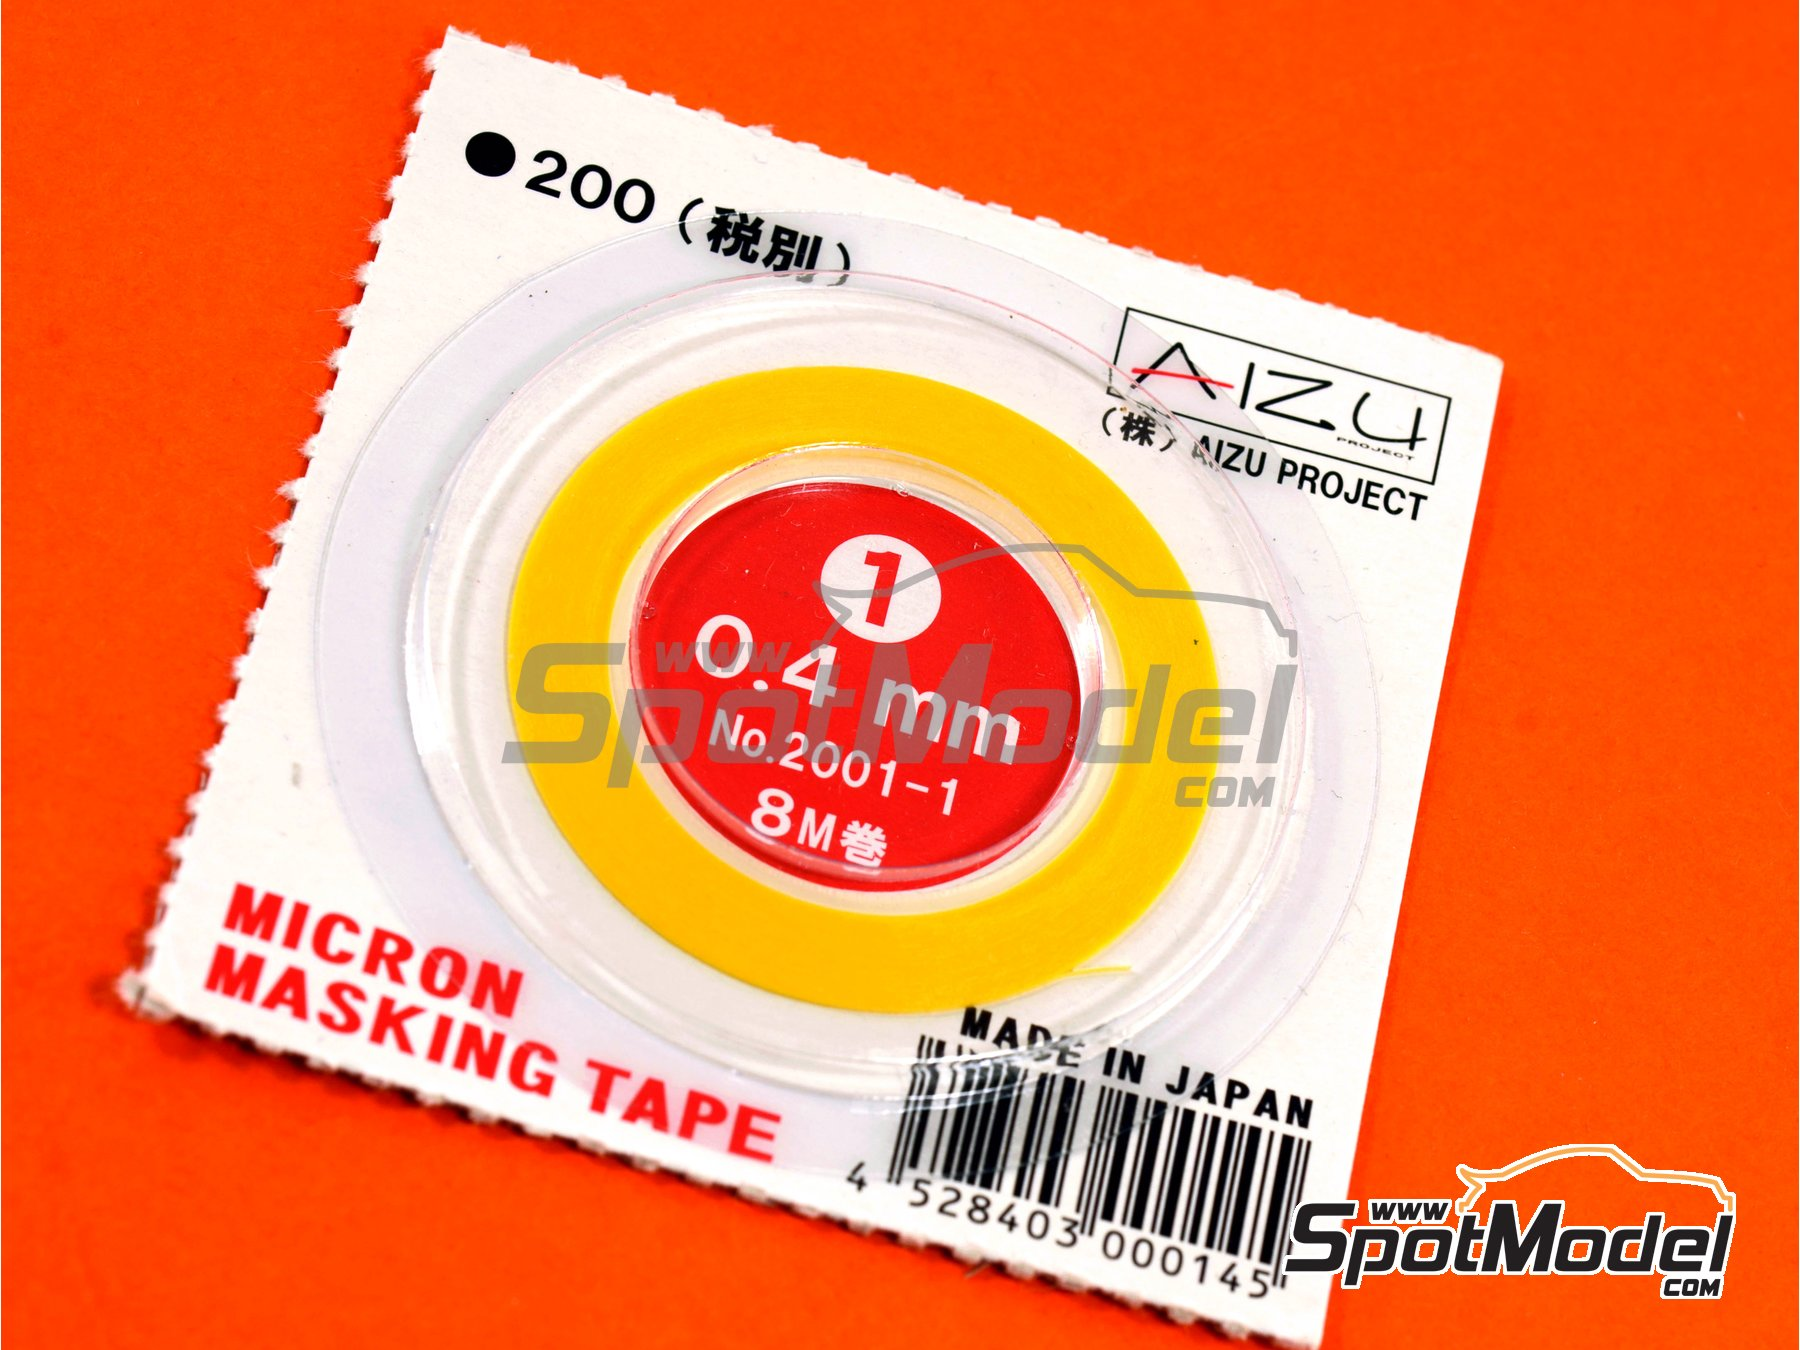 Image 1: Micron masking tape 0,4mm x 8m | Masks manufactured by Aizu Project (ref. AIZU-2001-1)